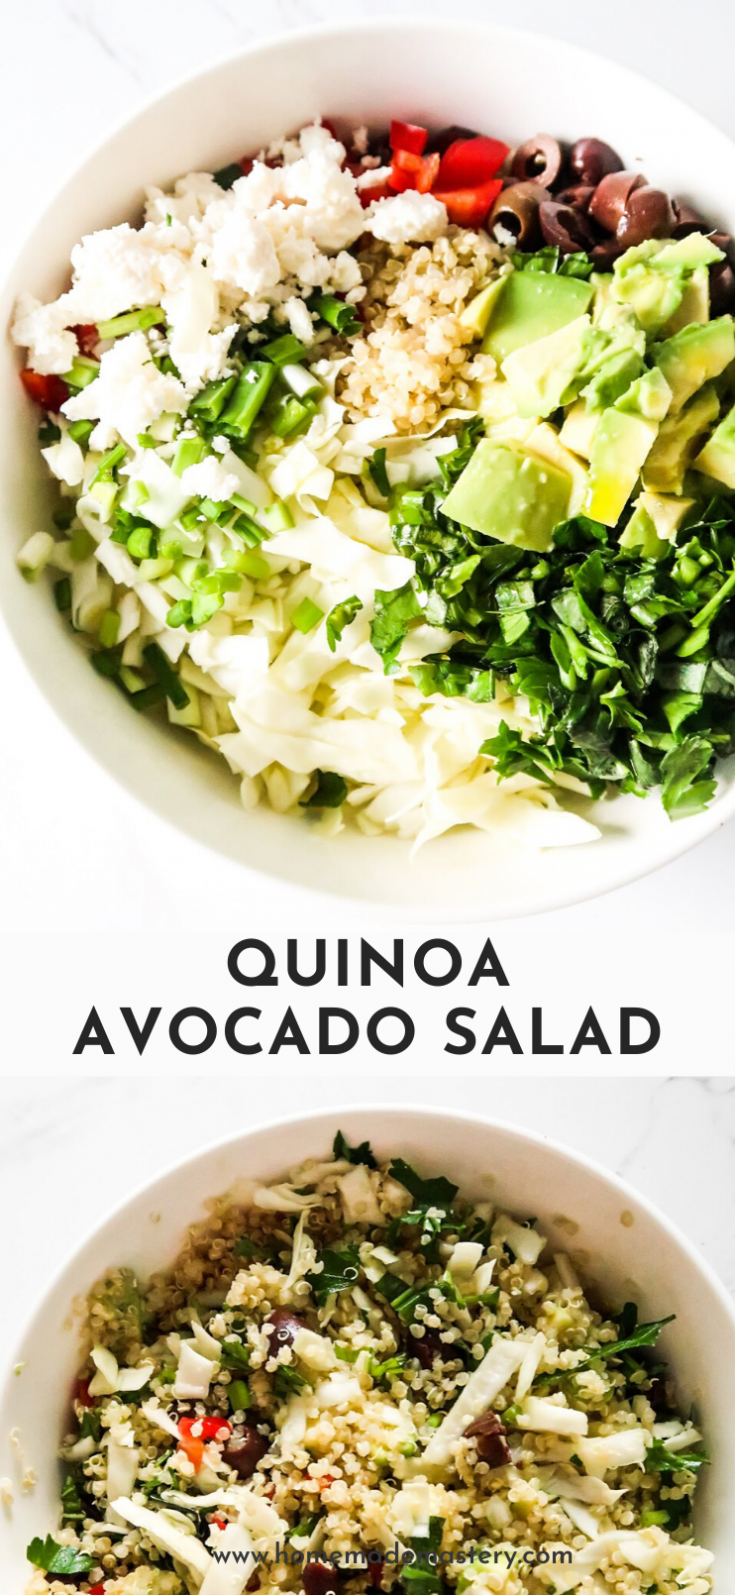 Avocado quinoa salad! An easy healthy salad recipe to serve as a side dish or as a delicious lunch salad! This delicious quinoa recipe is rich in fibre, vitamins and minerals  - it tastes amazing and and will make you feel great too!